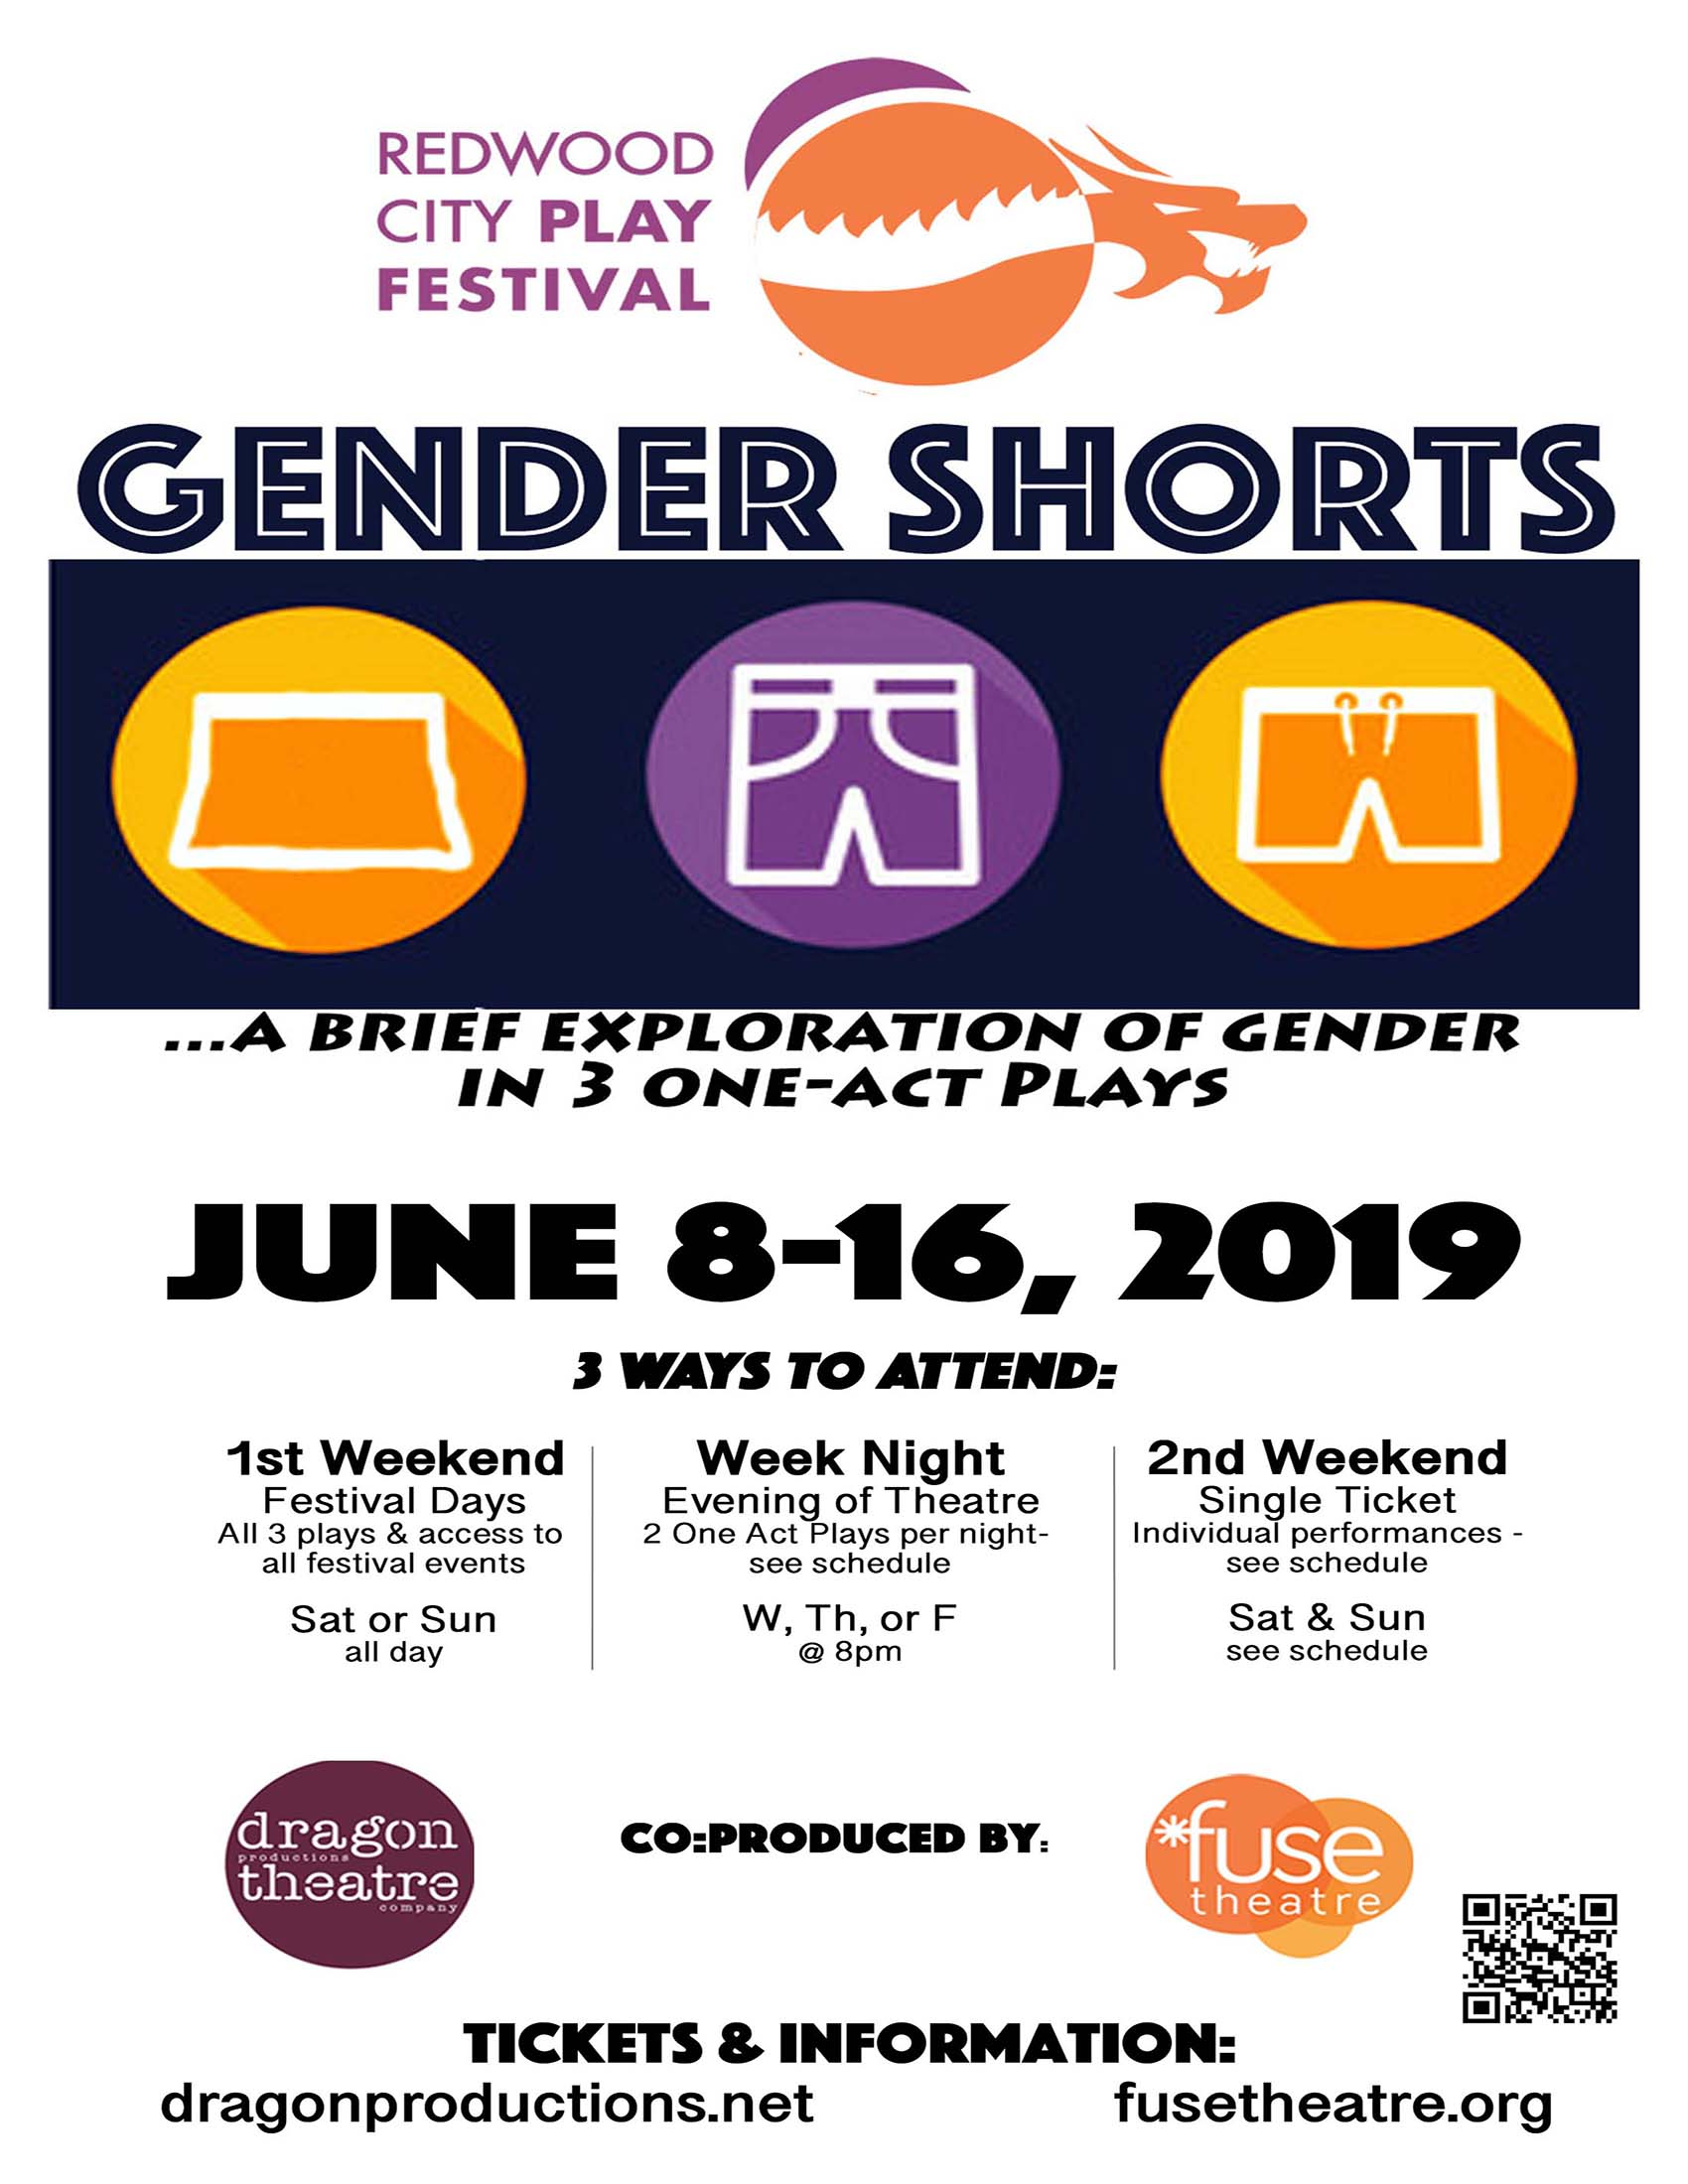 Redwood City Play Festival - Gender Shorts